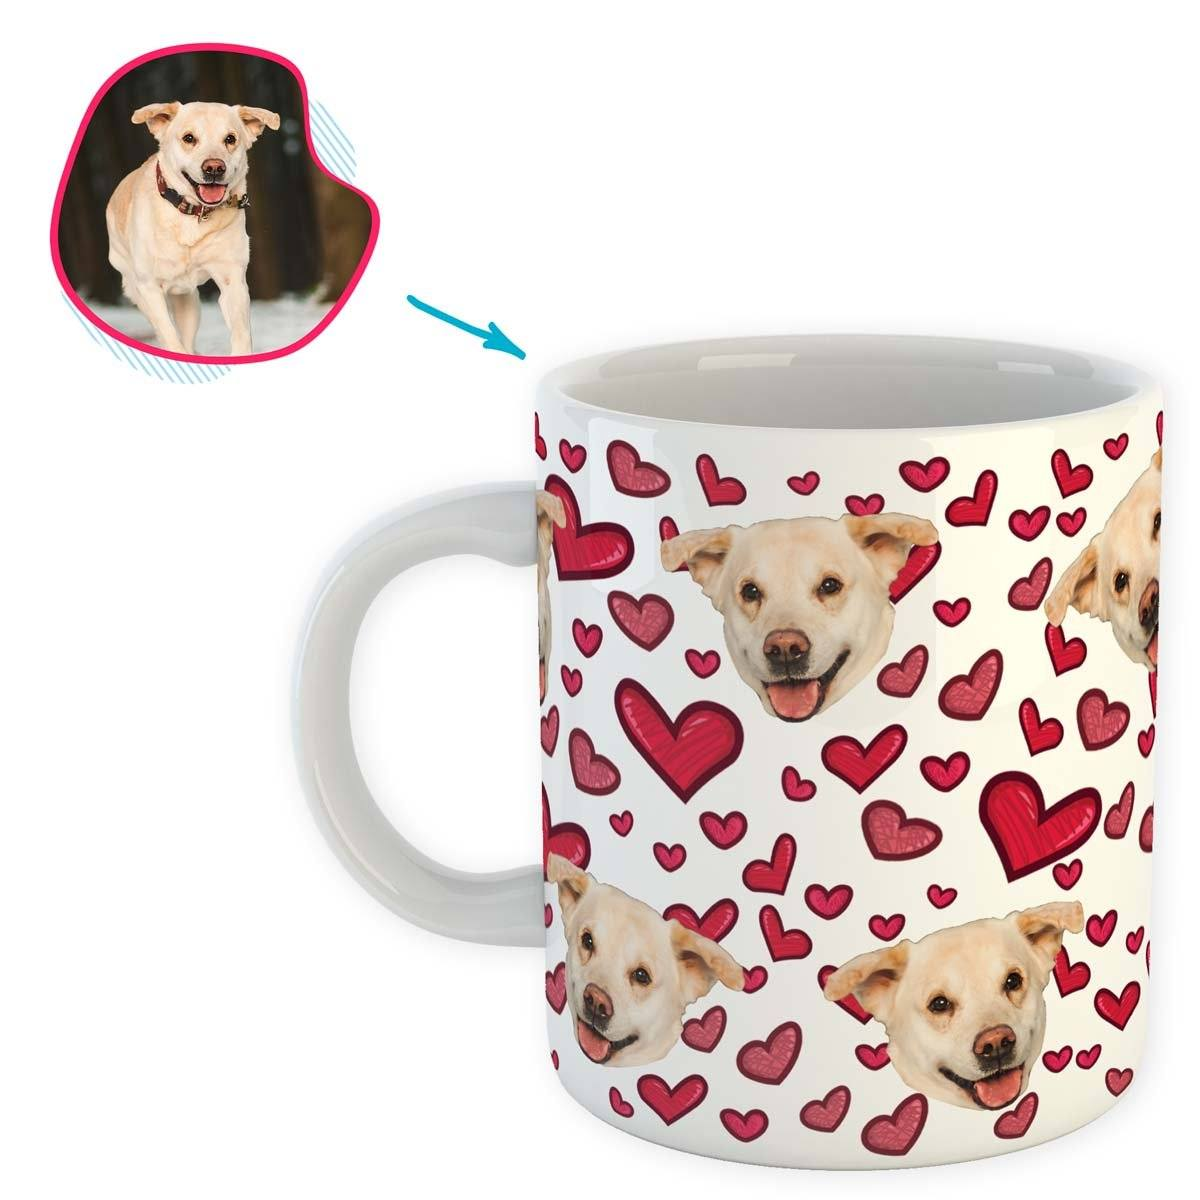 white Heart mug personalized with photo of face printed on it